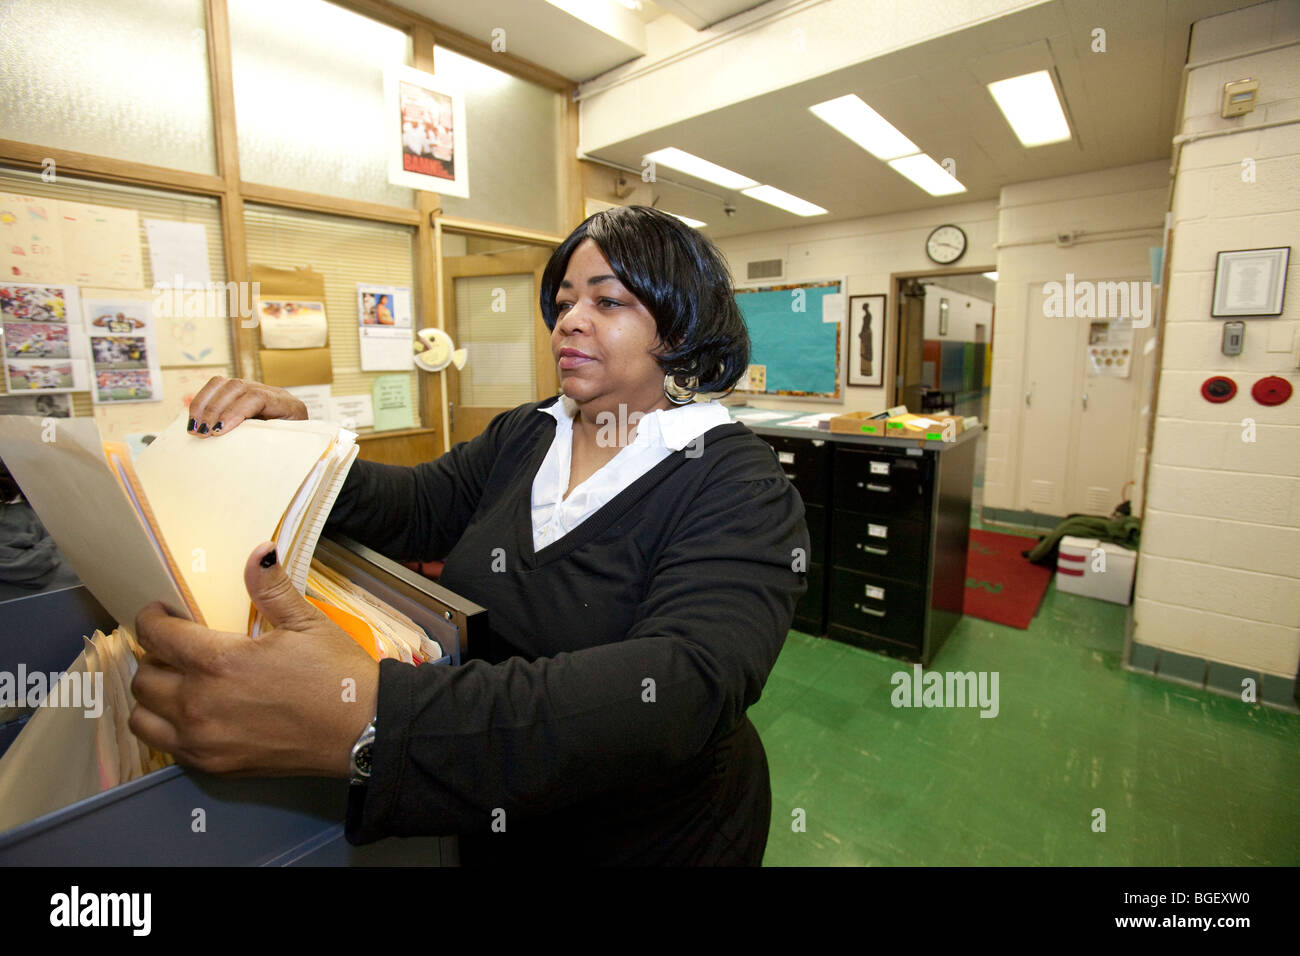 Detroit, Michigan - A Detroit Public Schools secretary on the job at Malcolm X Academy. - Stock Image